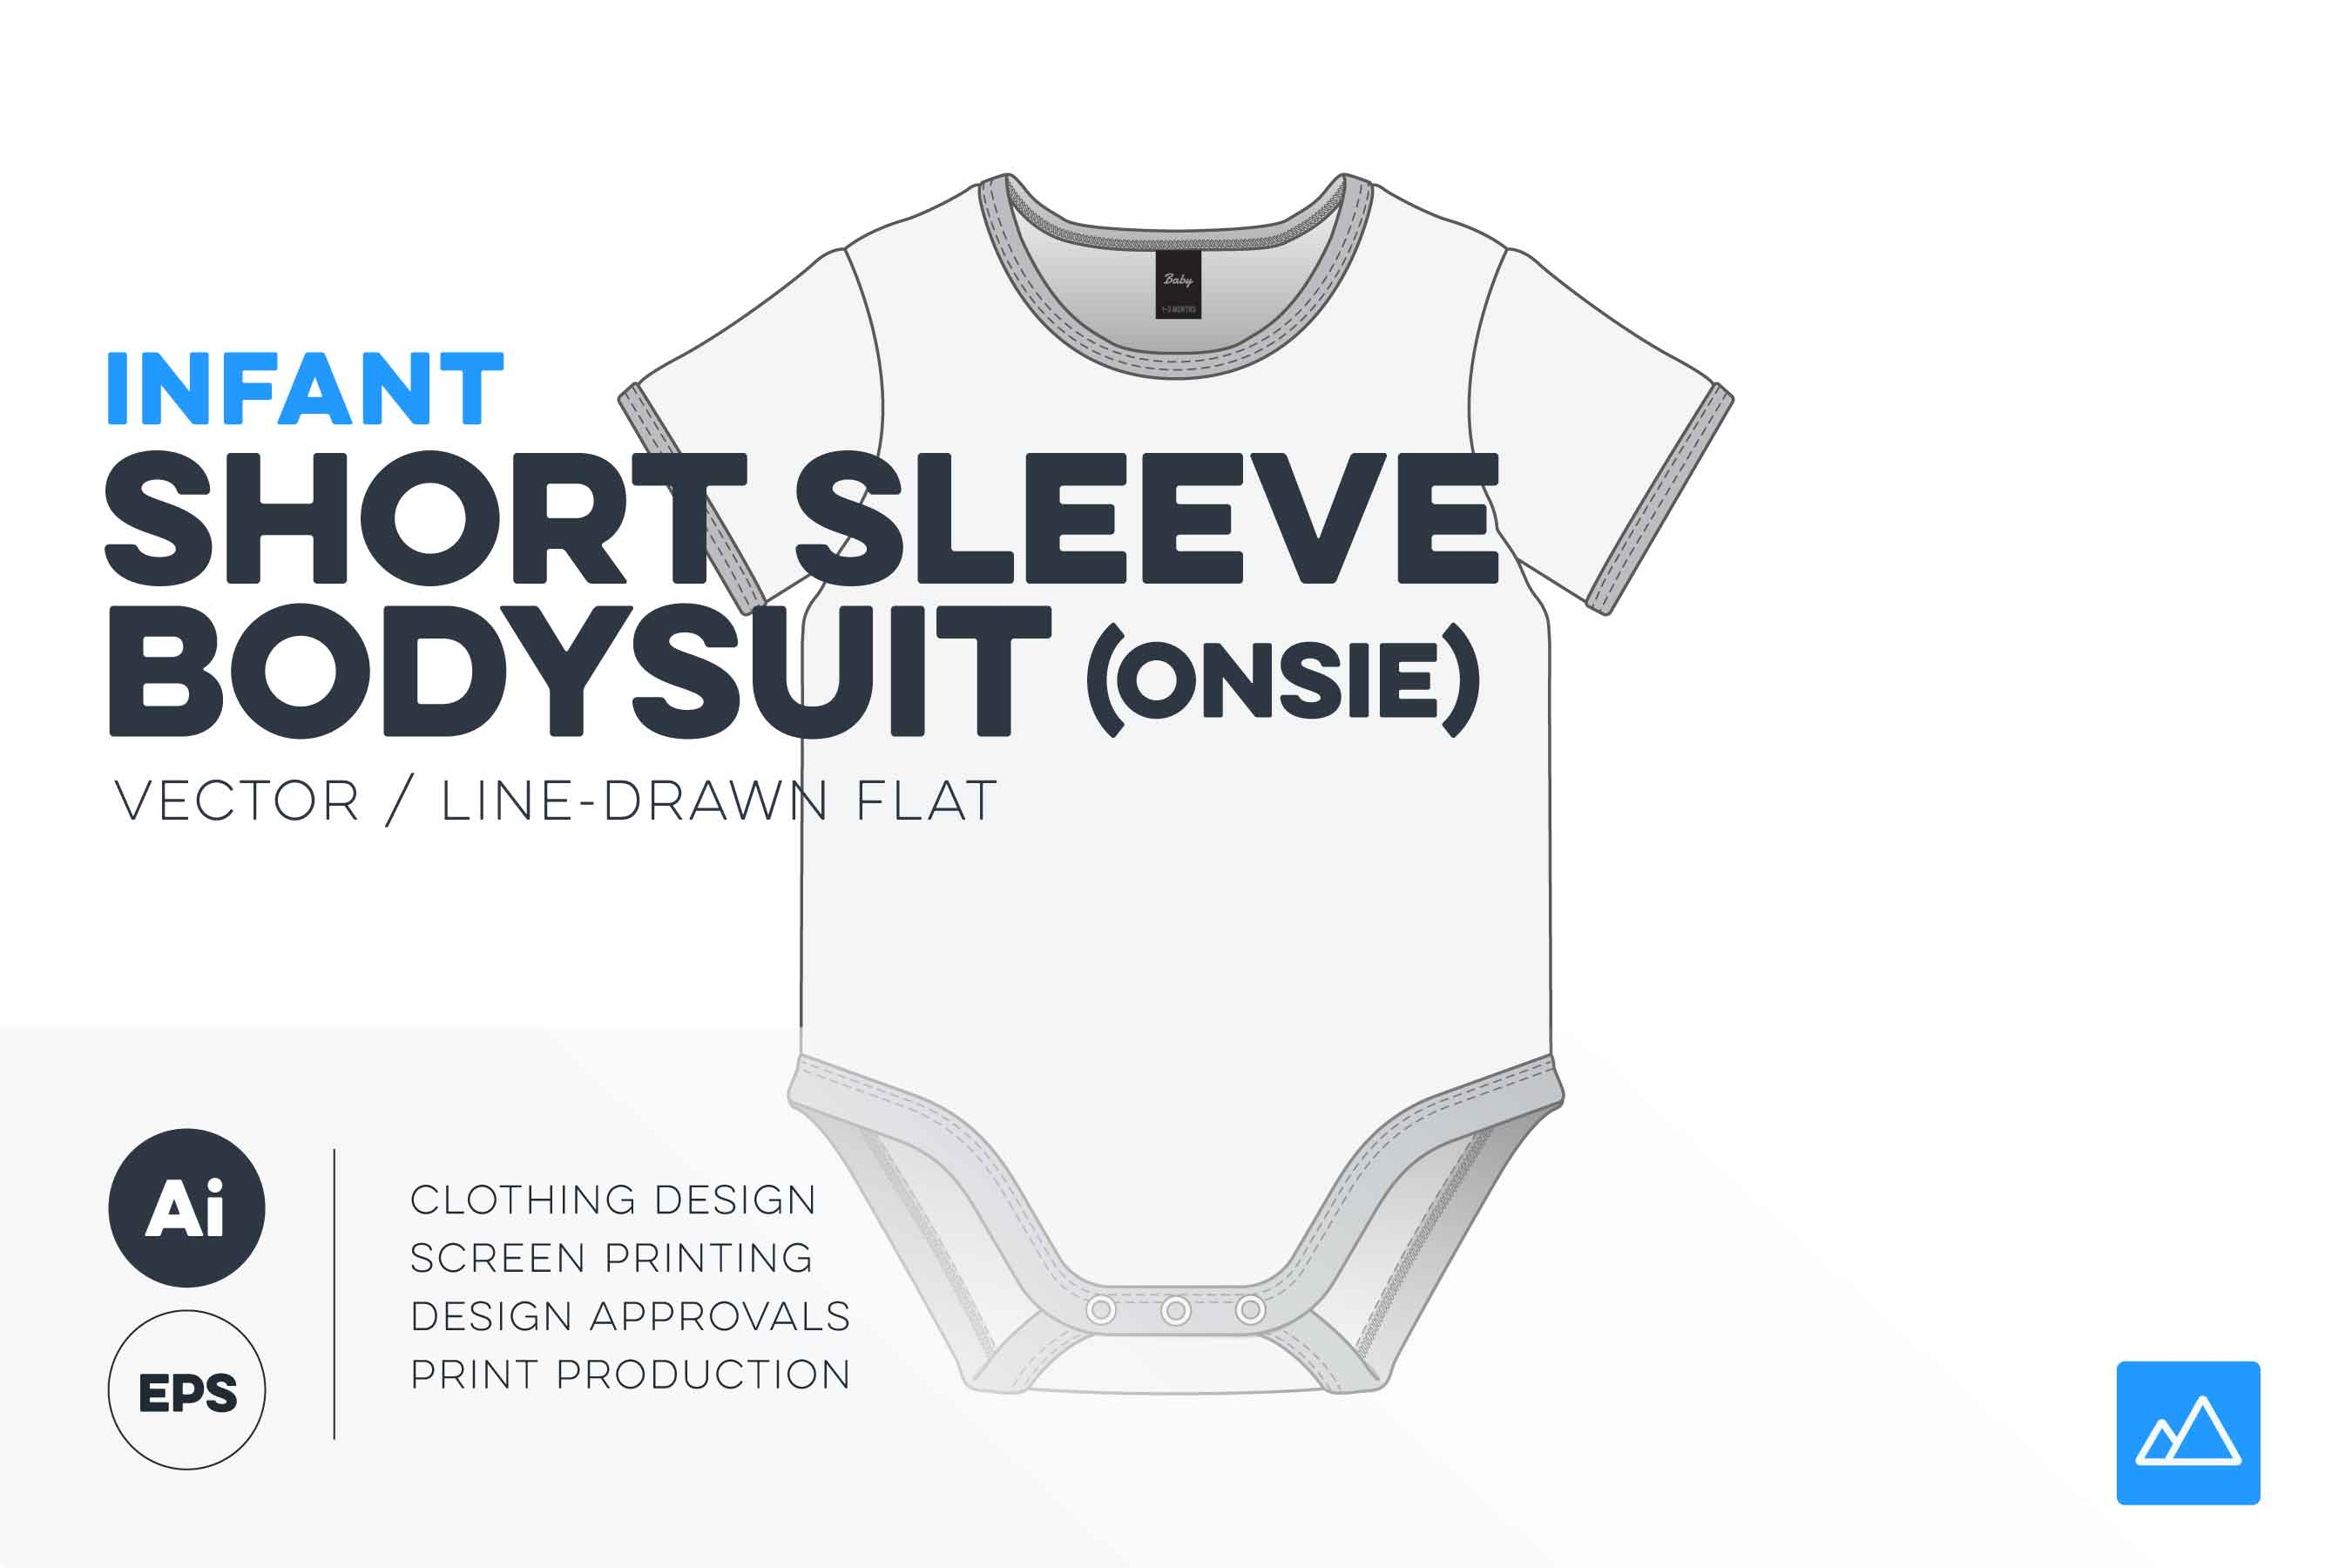 Infant short sleeve bodysuit template onesie vector pack HERO v2